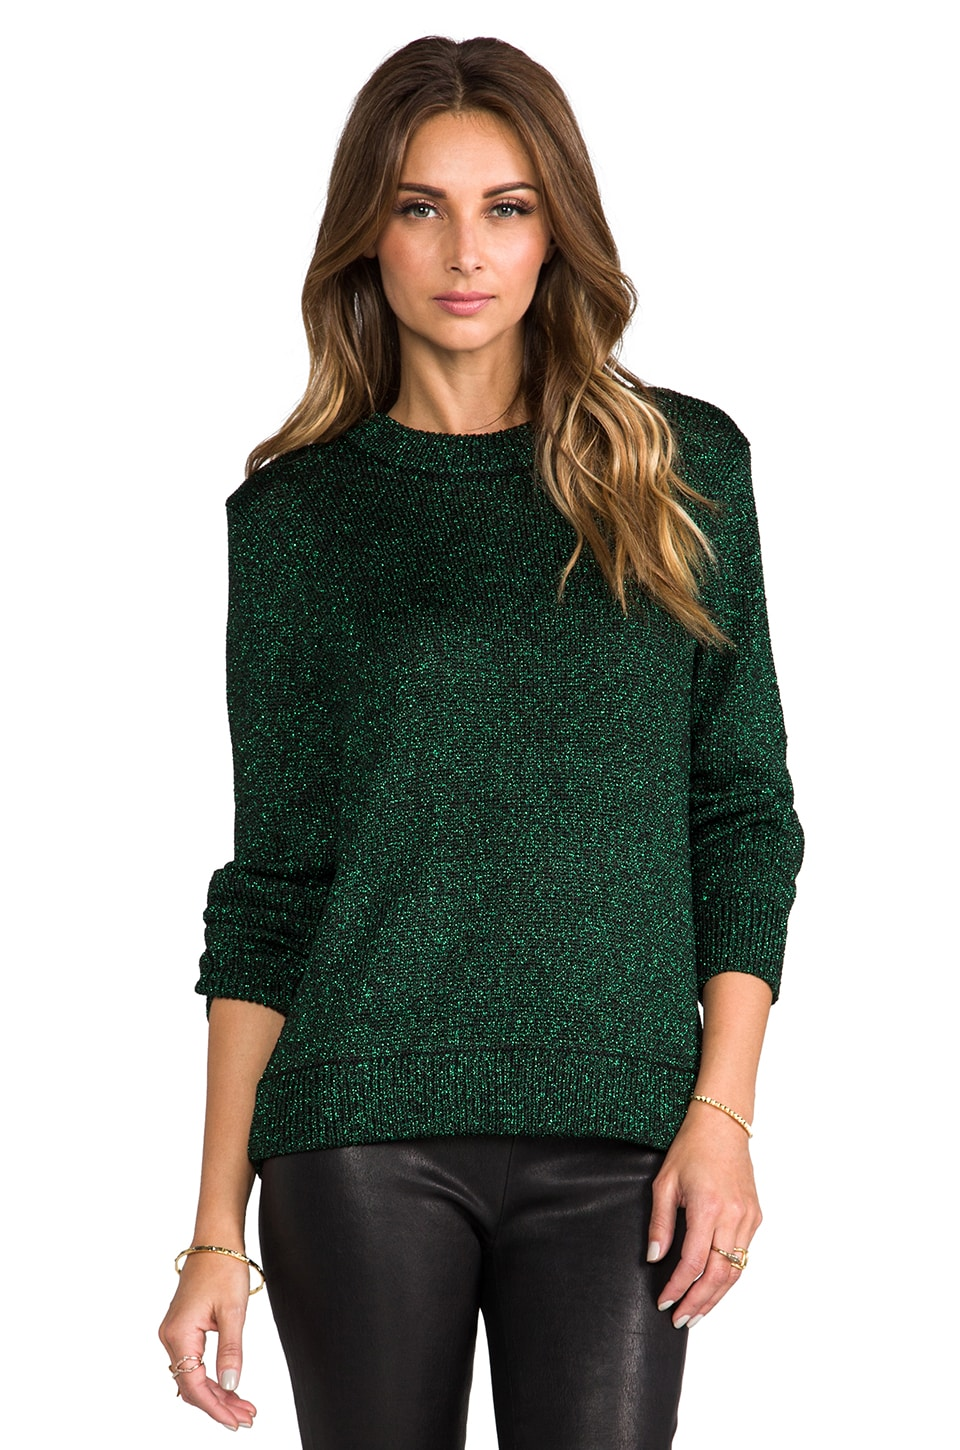 Tibi Chunky Lurex Sweater in Emerald